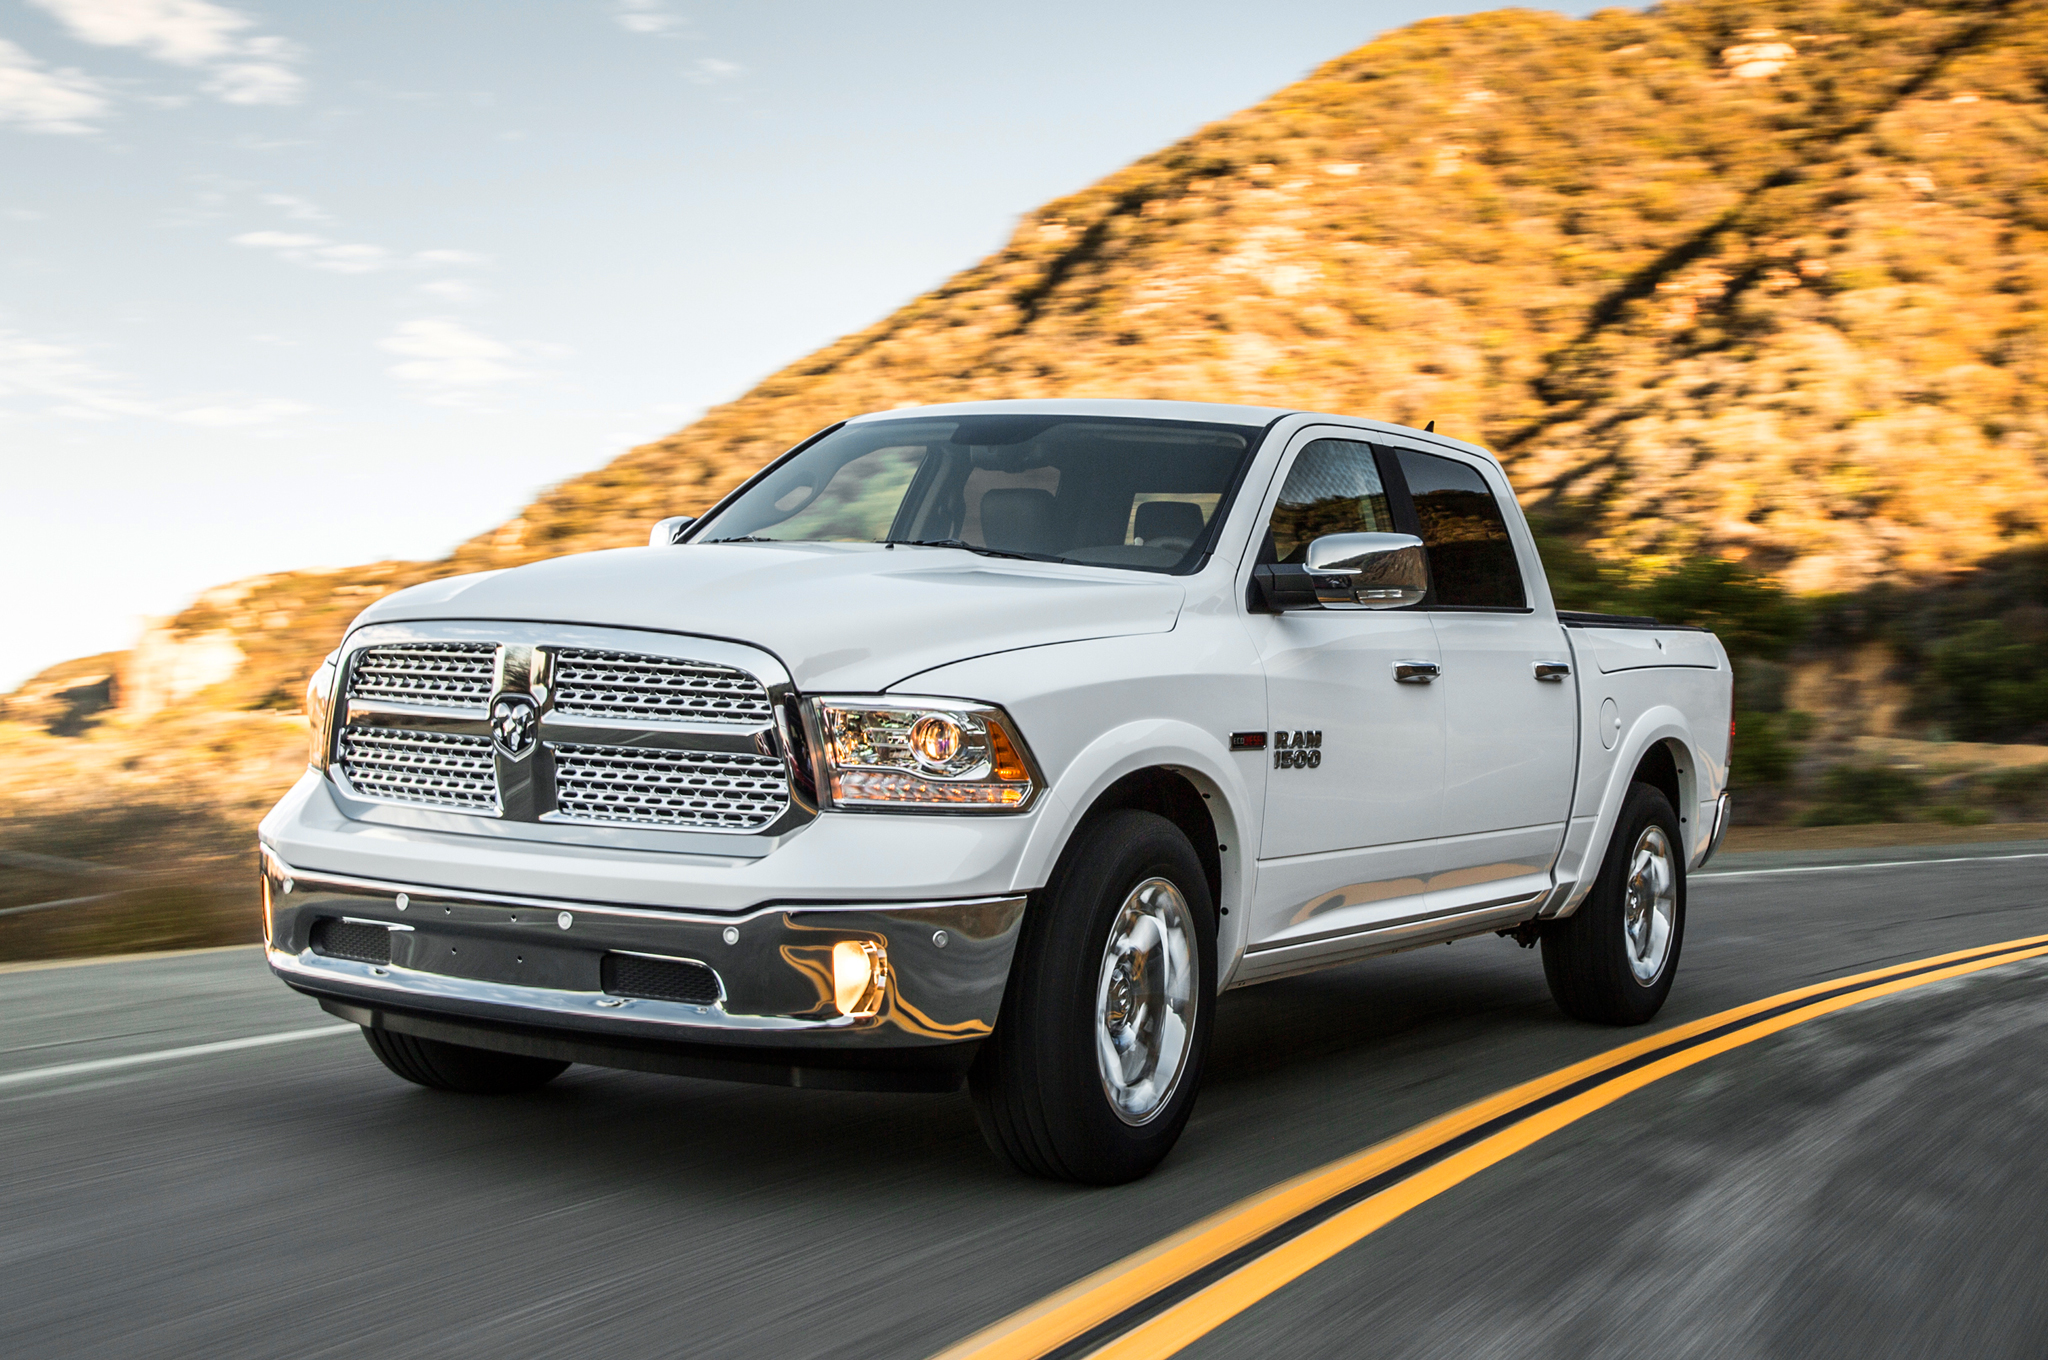 Ram 1500 EcoDiesel Production To Be Doubled By Chrysler